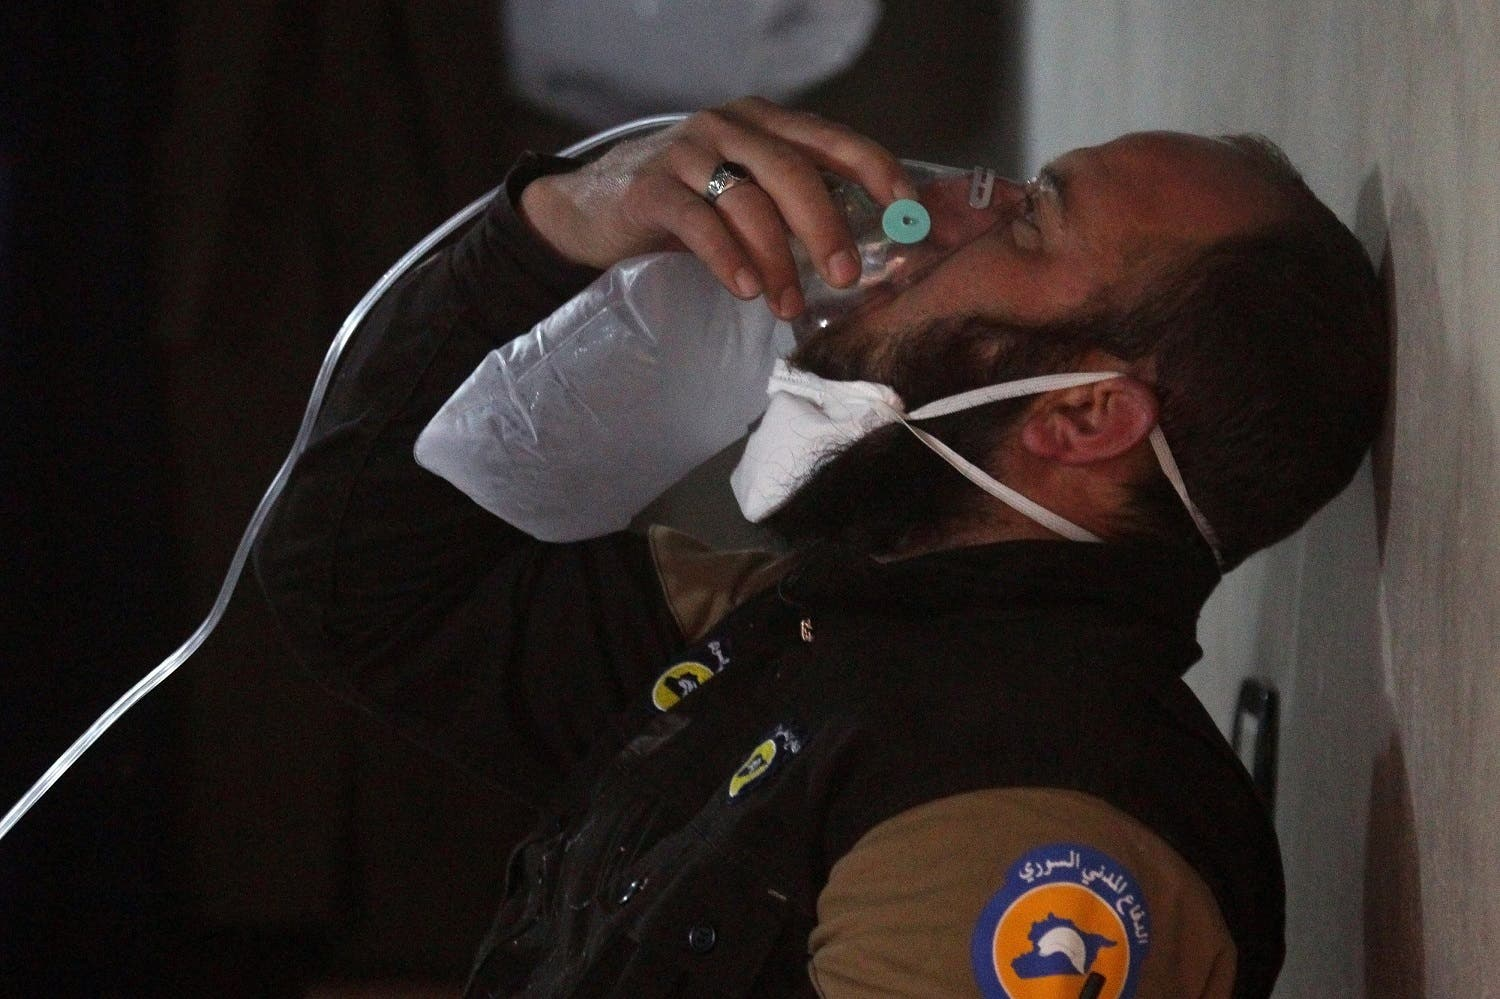 A civil defense member breathes through an oxygen mask, after what rescue workers described as a suspected gas attack in the town of Khan Sheikhoun in rebel-held Idlib. (Reuters)